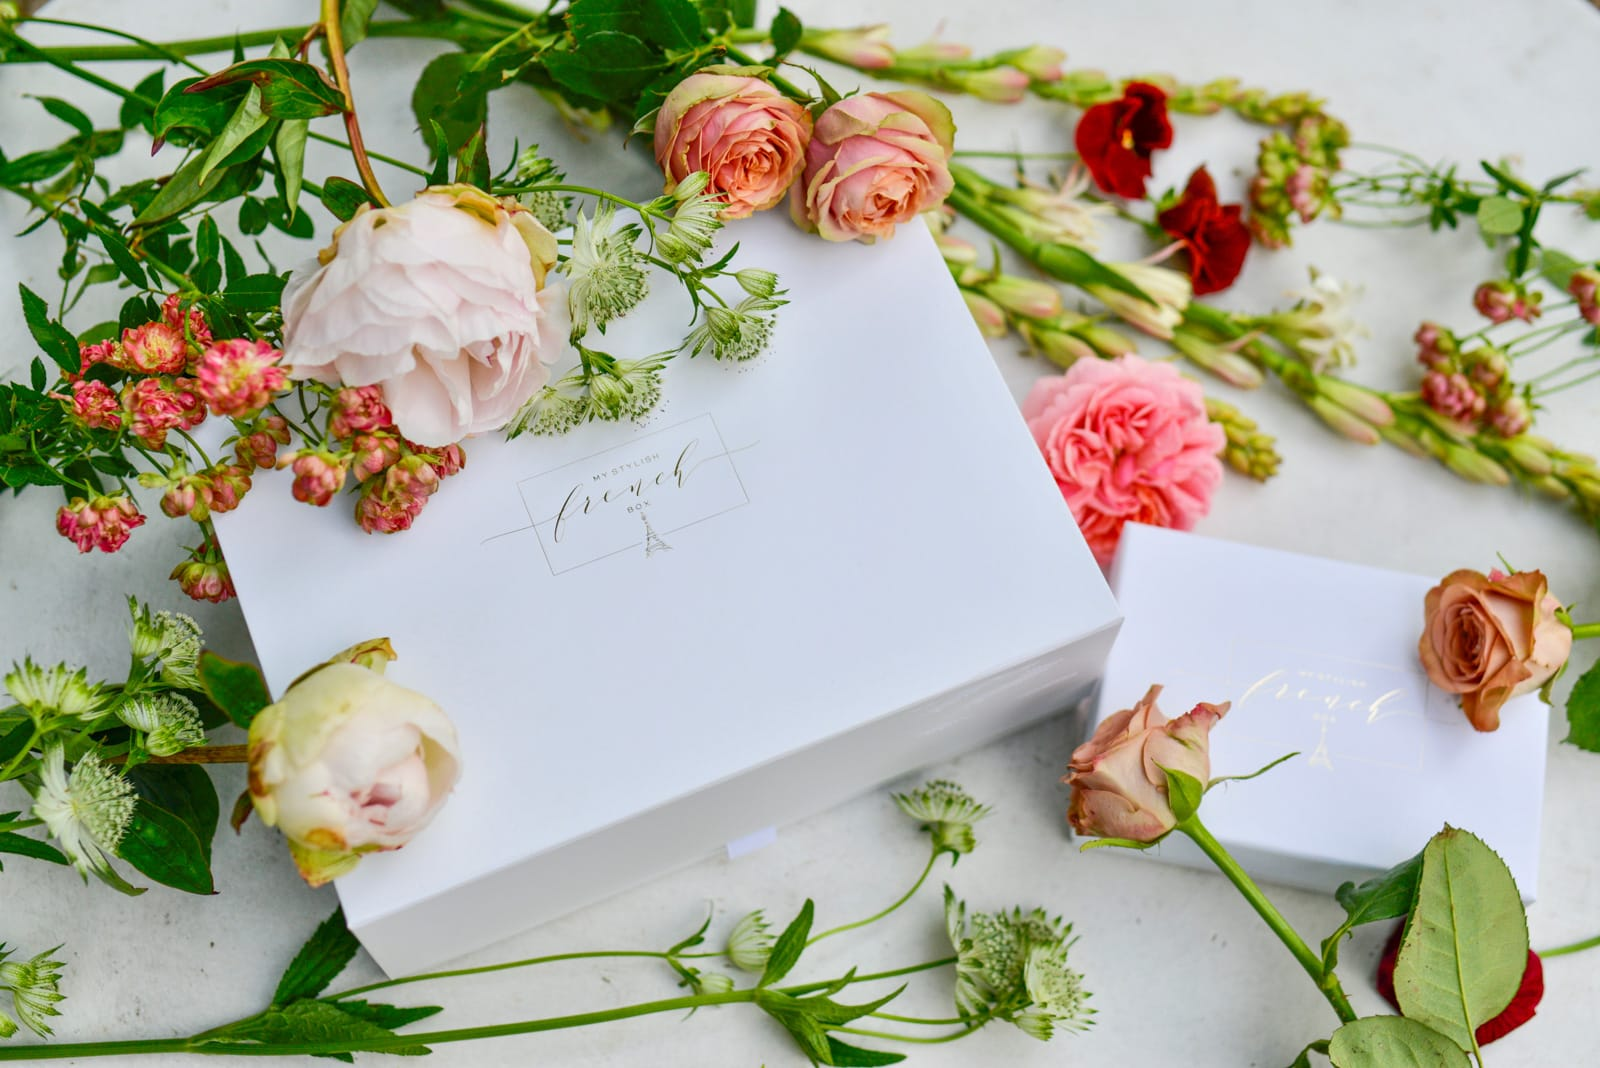 My Stylish French Box August 2019 Theme Spoilers!